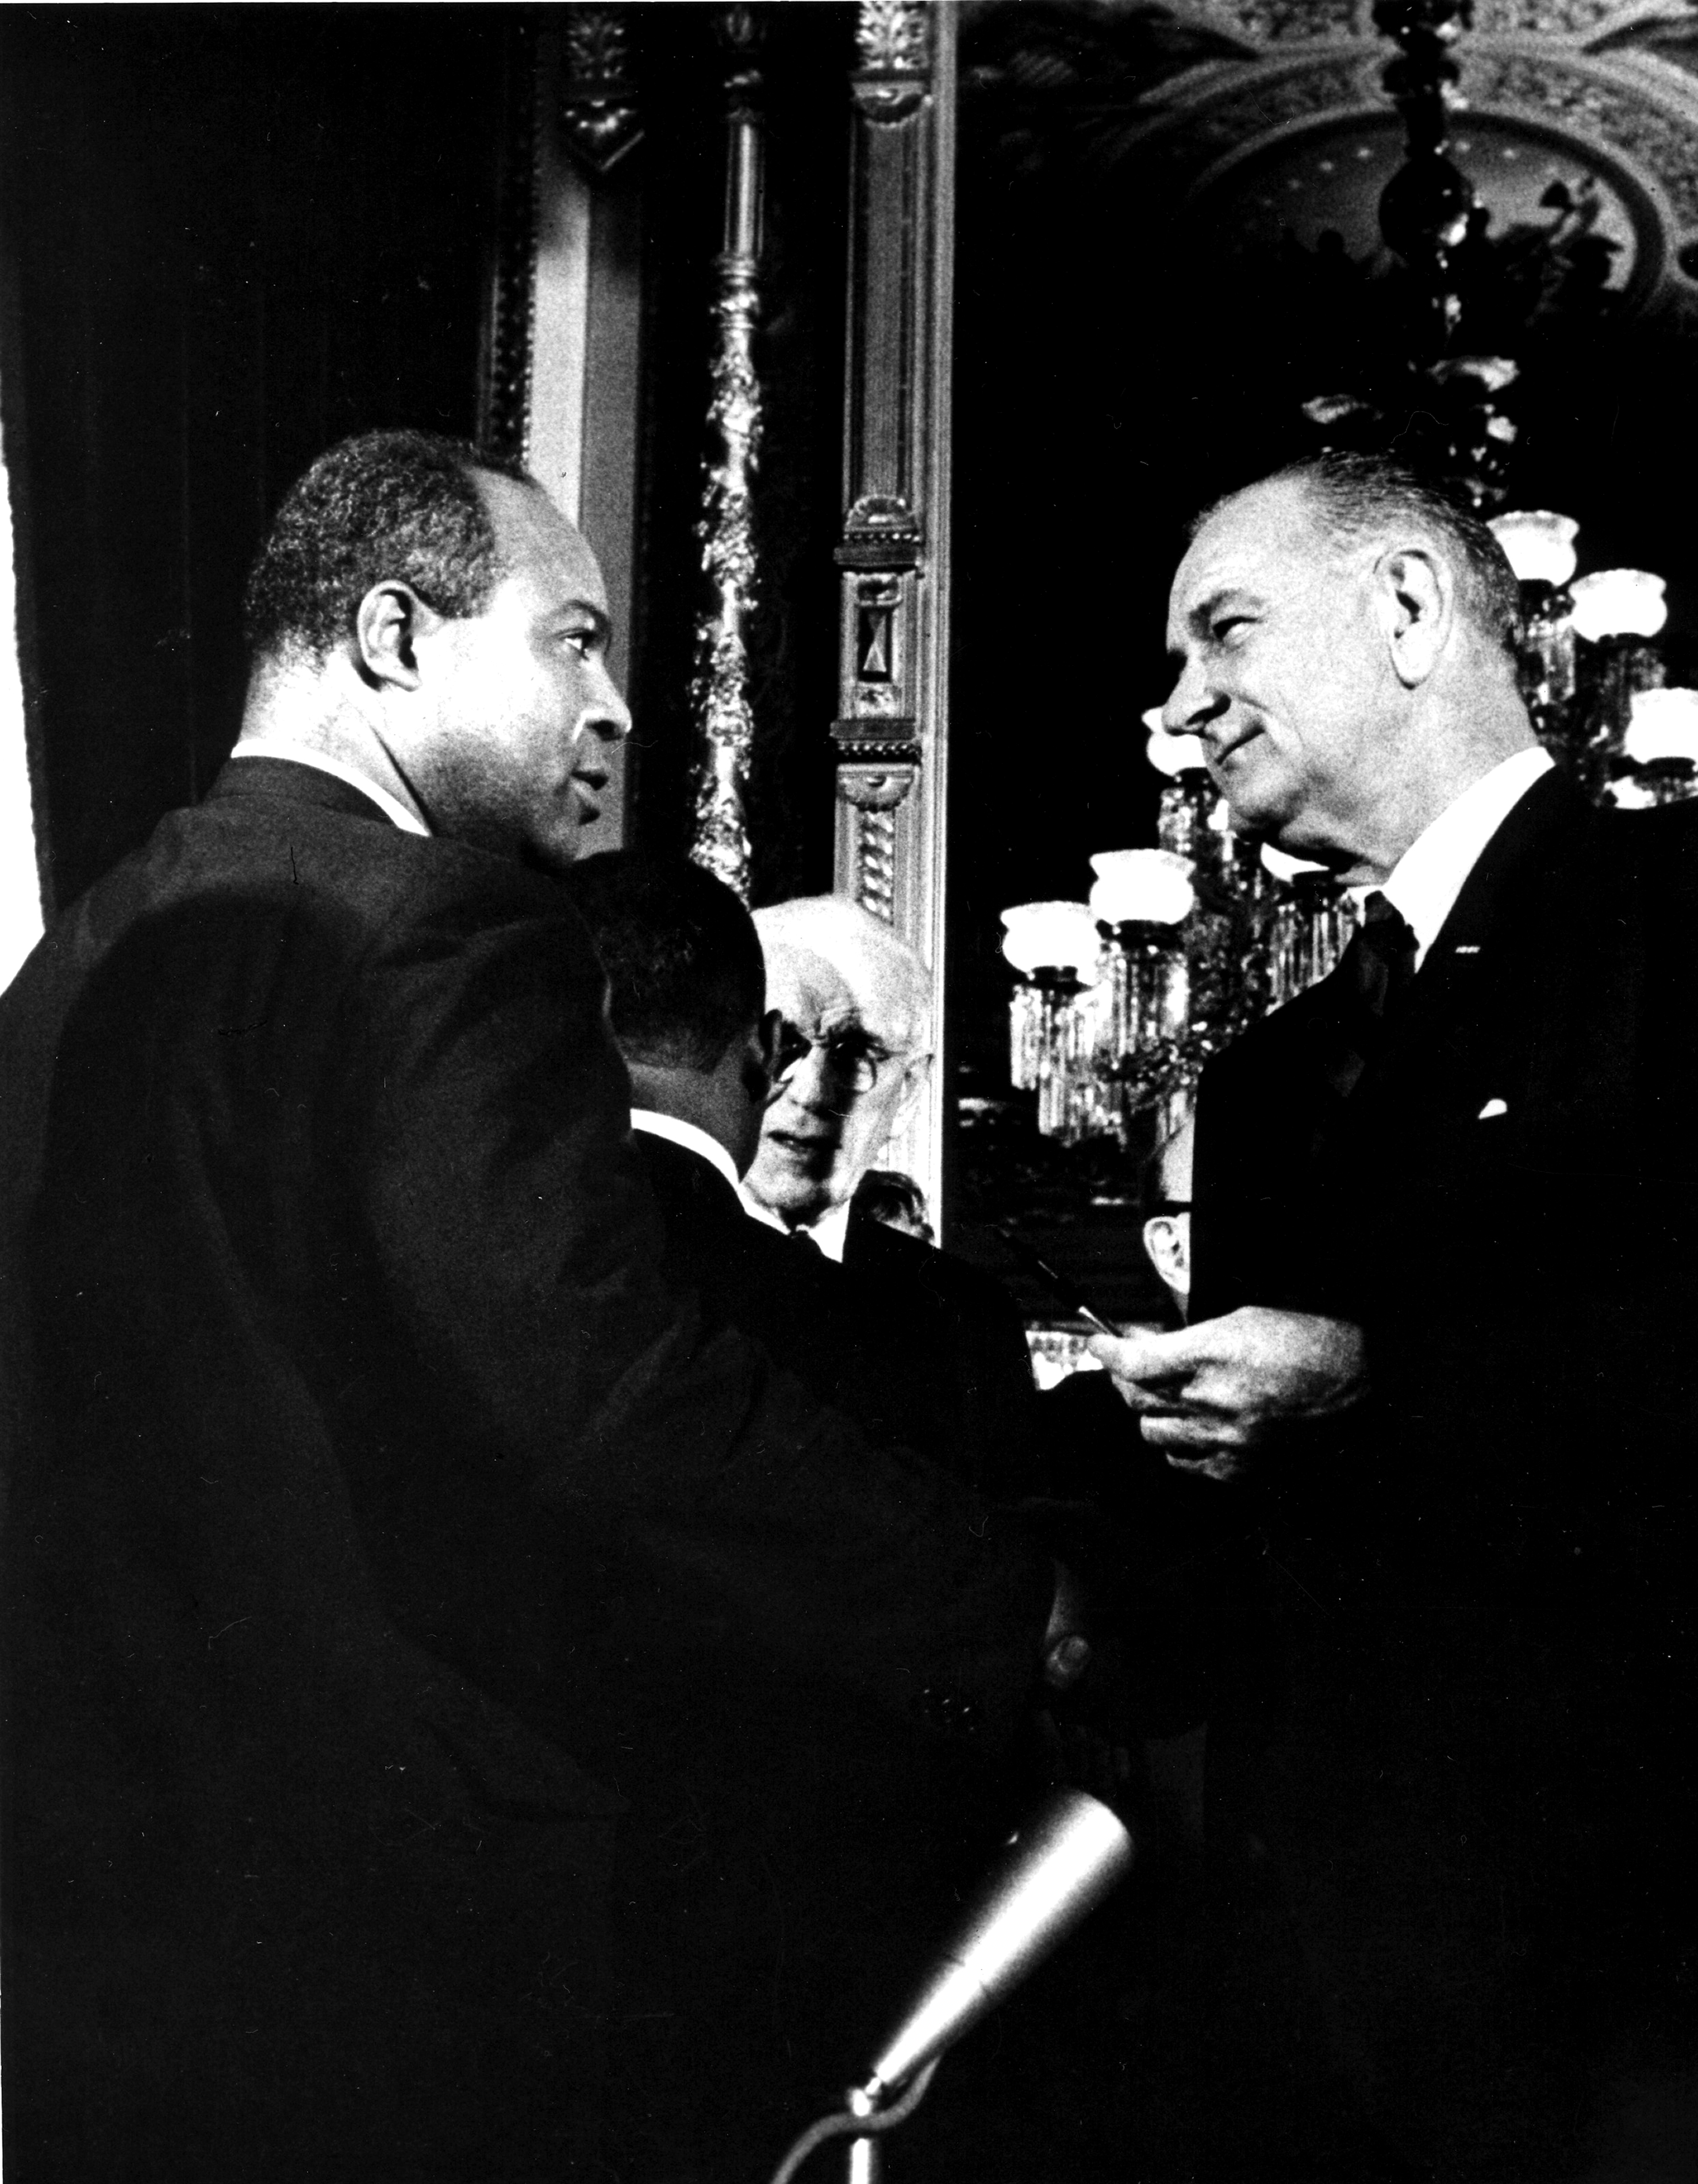 President Lyndon B. Johnson  presents one of the pens used to sign the Voting Rights Act of 1965 to the director of the Congress of Racial Equality (CORE) James L. Farmer Jr, Washington DC, August 6, 1965.